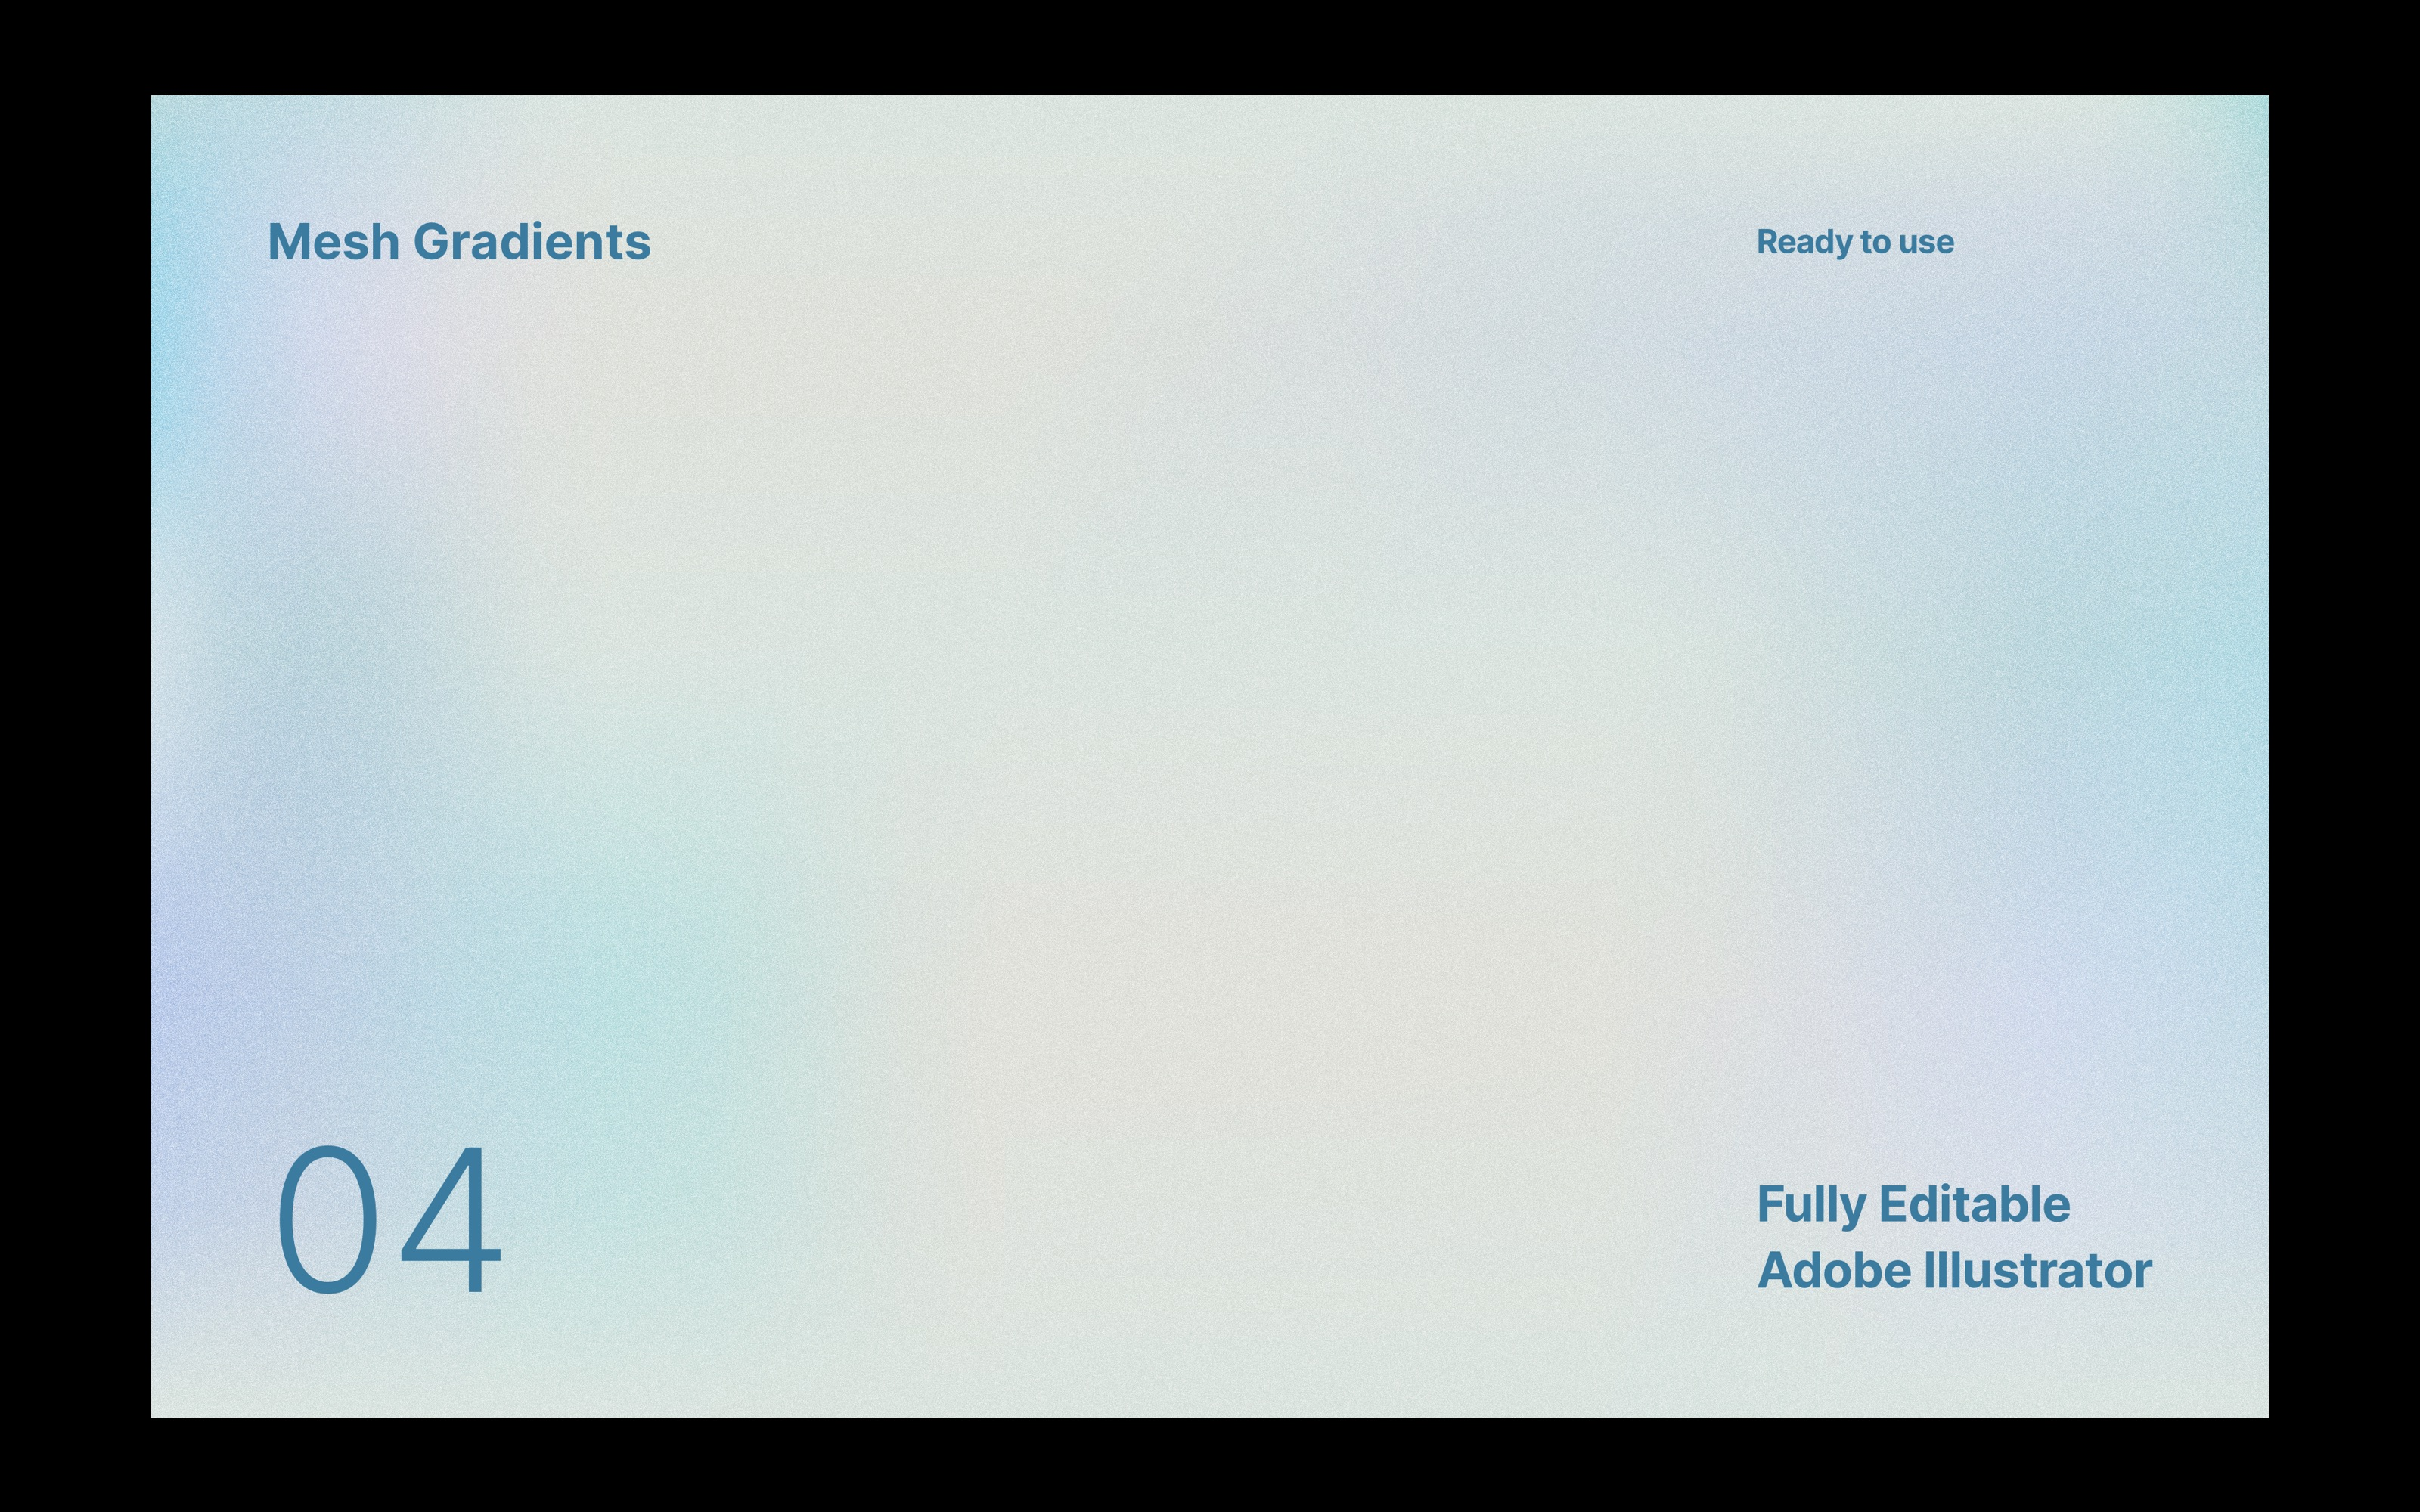 Mesh Gradients download for Illustrator, XD, Sketch and Figma